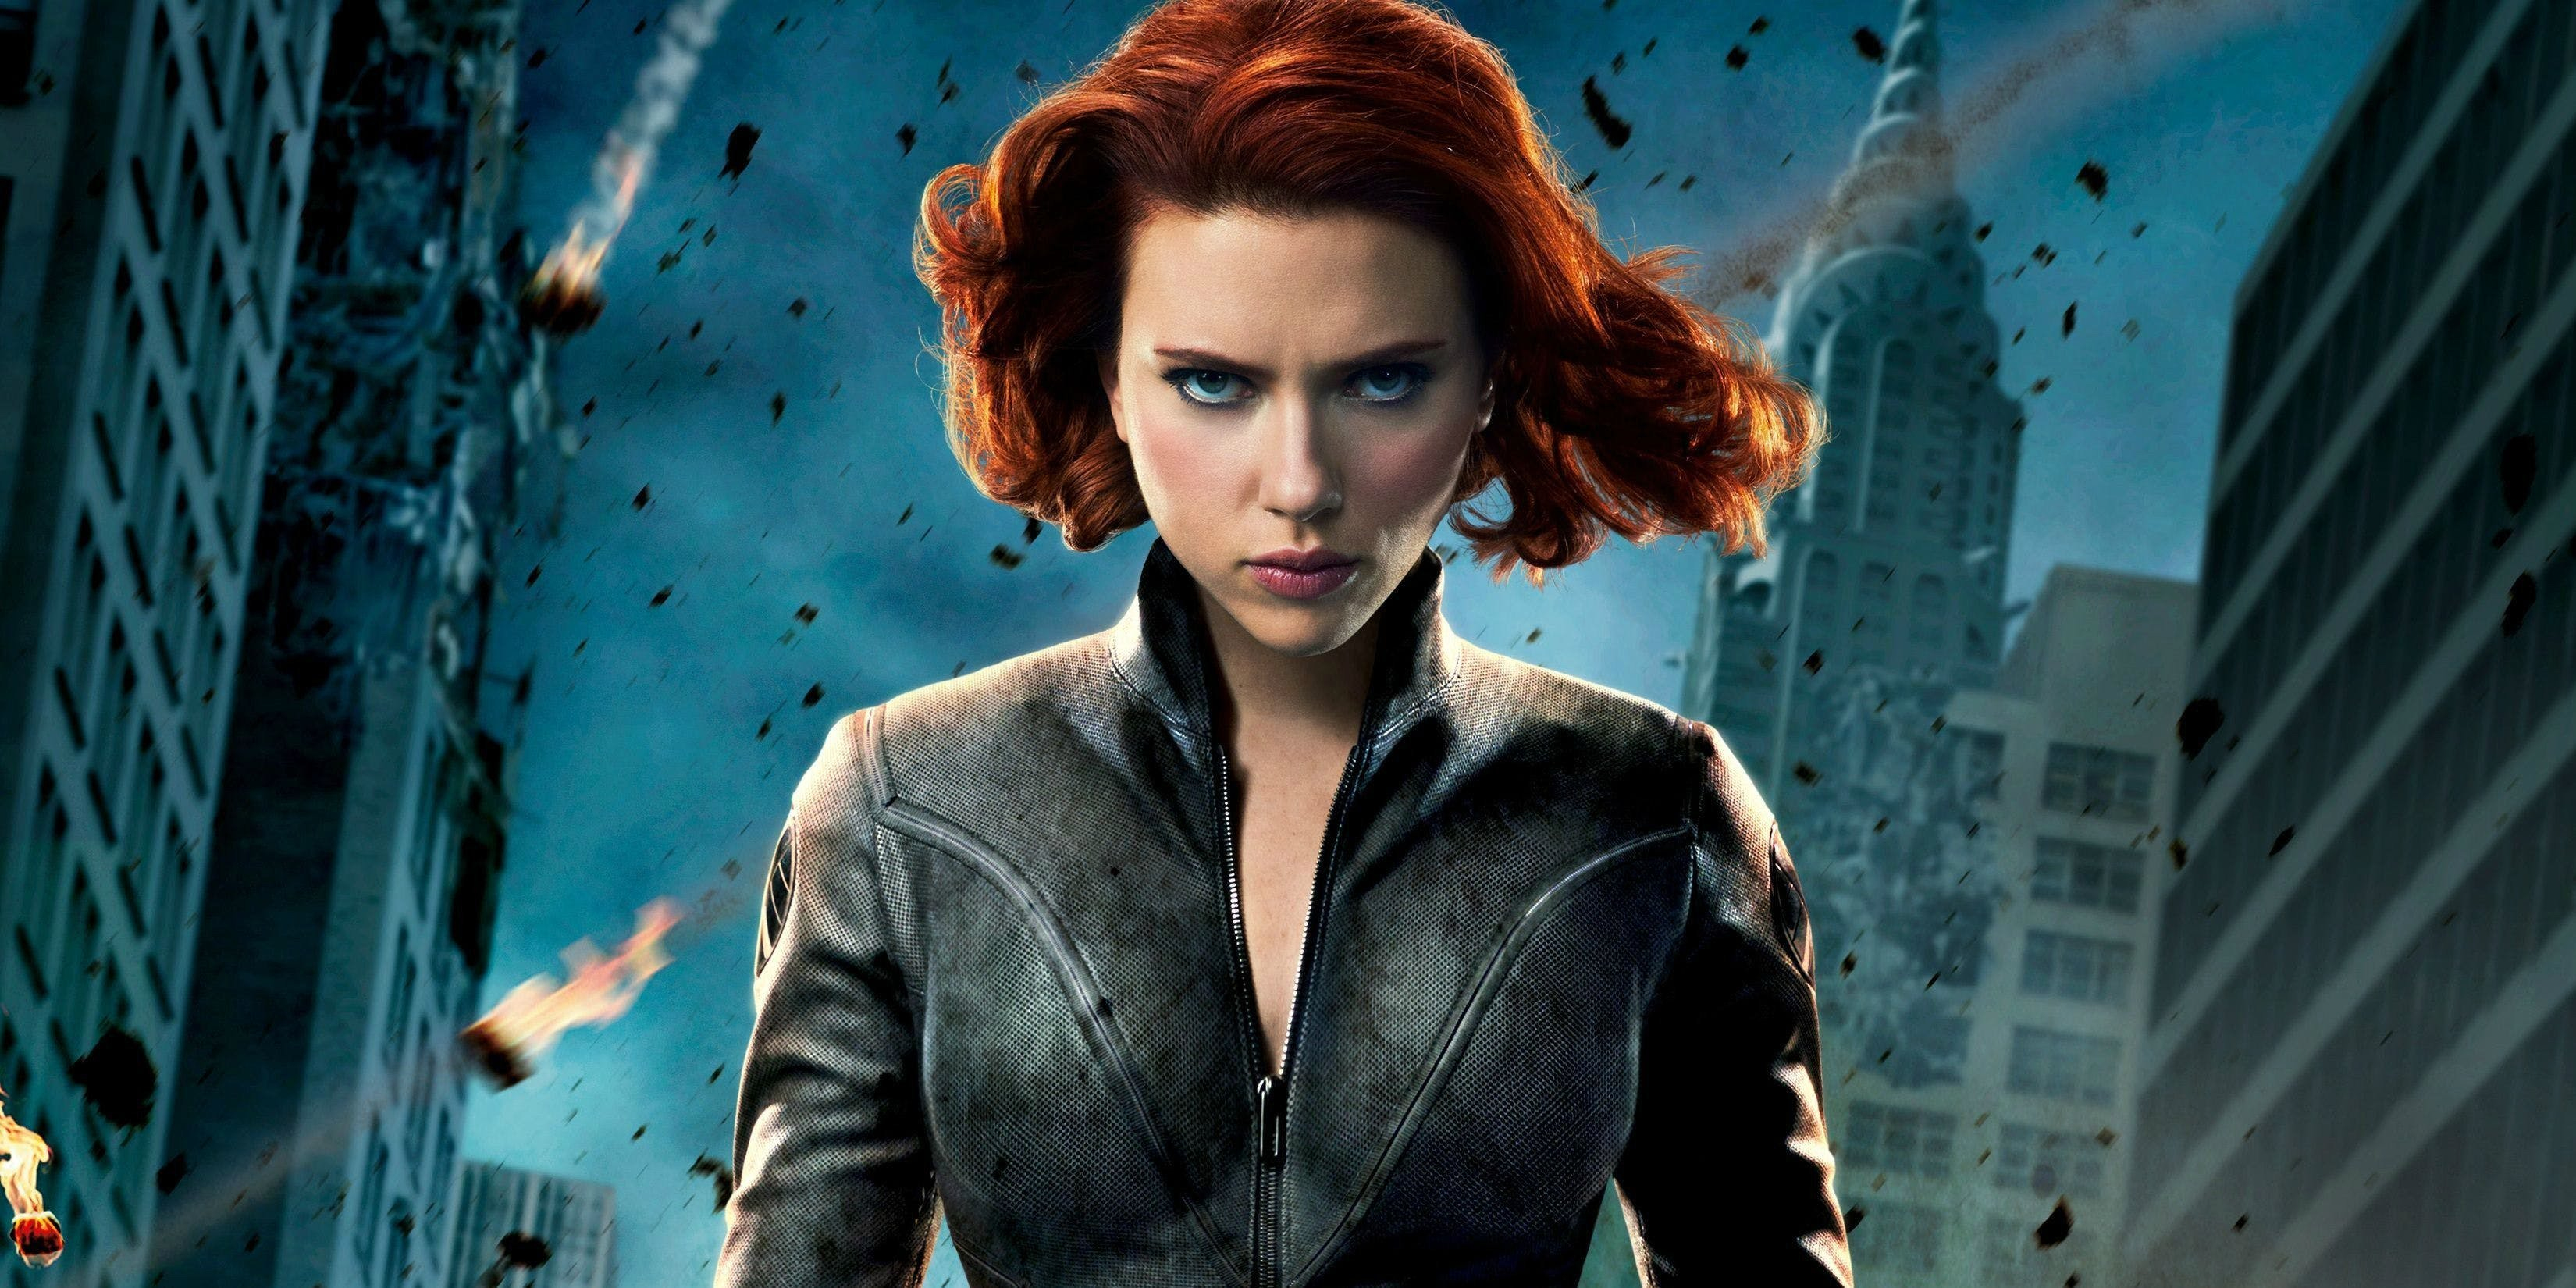 black widow marvel super hero avengers hd wallpaper